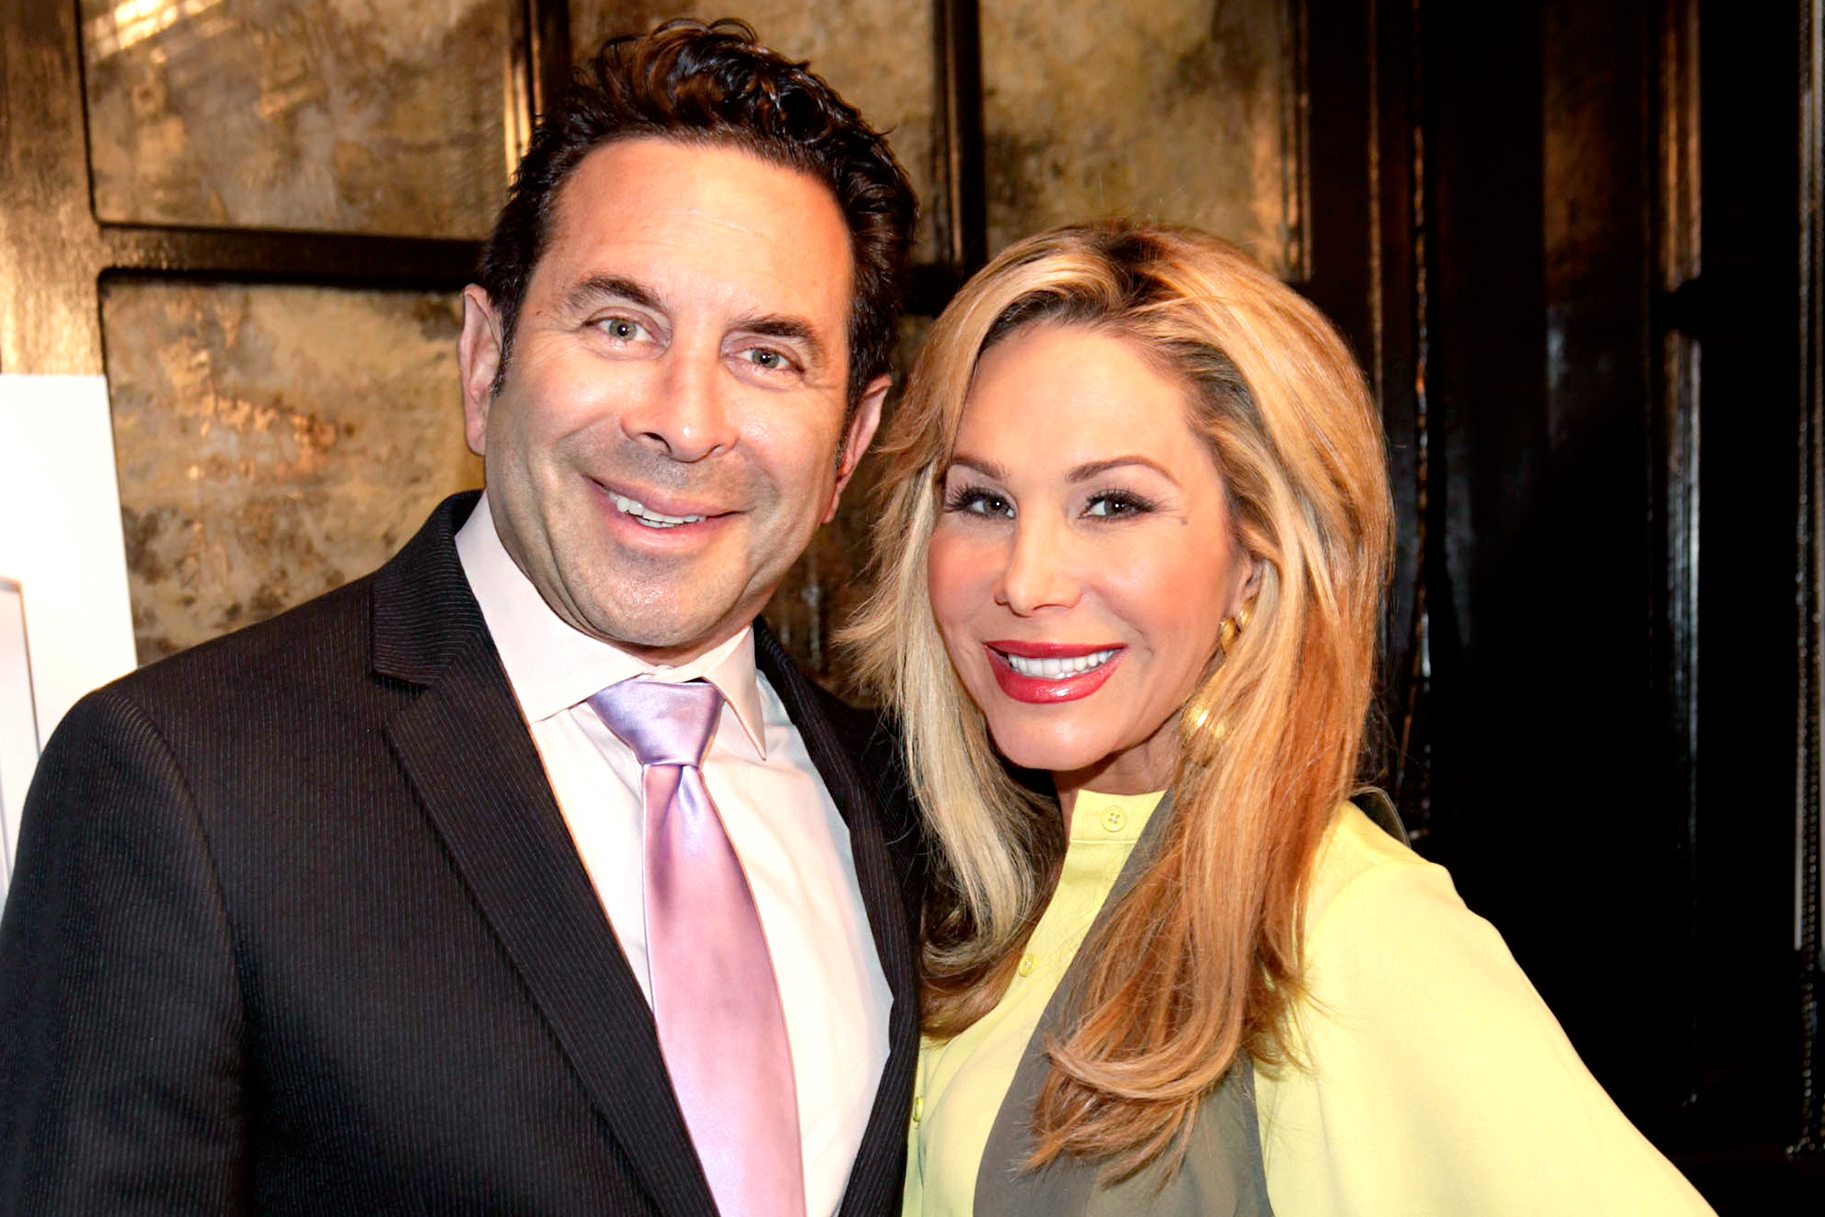 Paul Nassif & Adrienne Maloof Divorce & Co-Parenting Sons | The